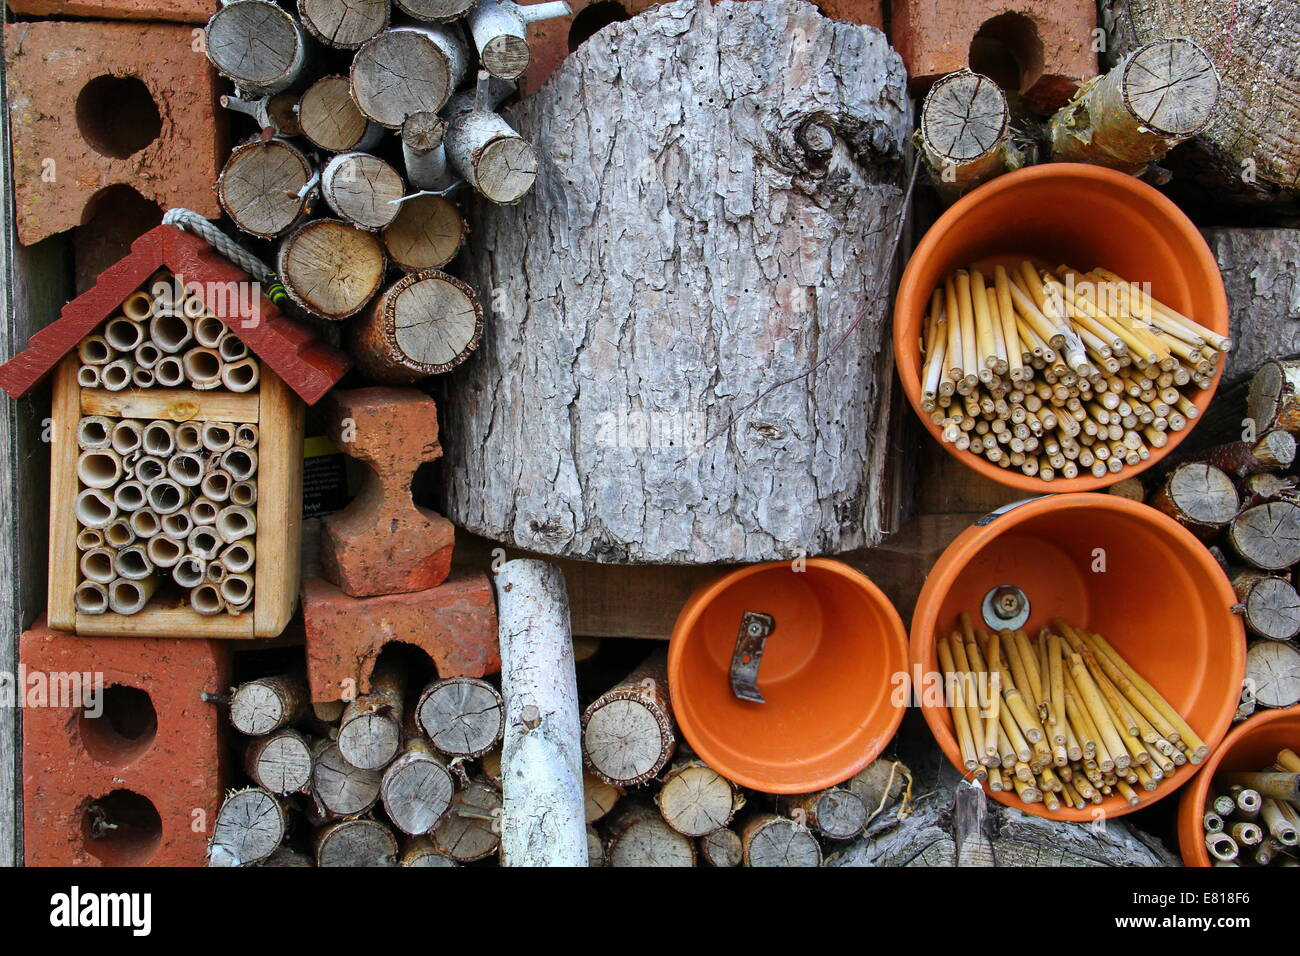 Detail of an insect hotel (wildlife stack) featuring bricks, bamboo, pots & logs to  encourage insect hibernation - Stock Image